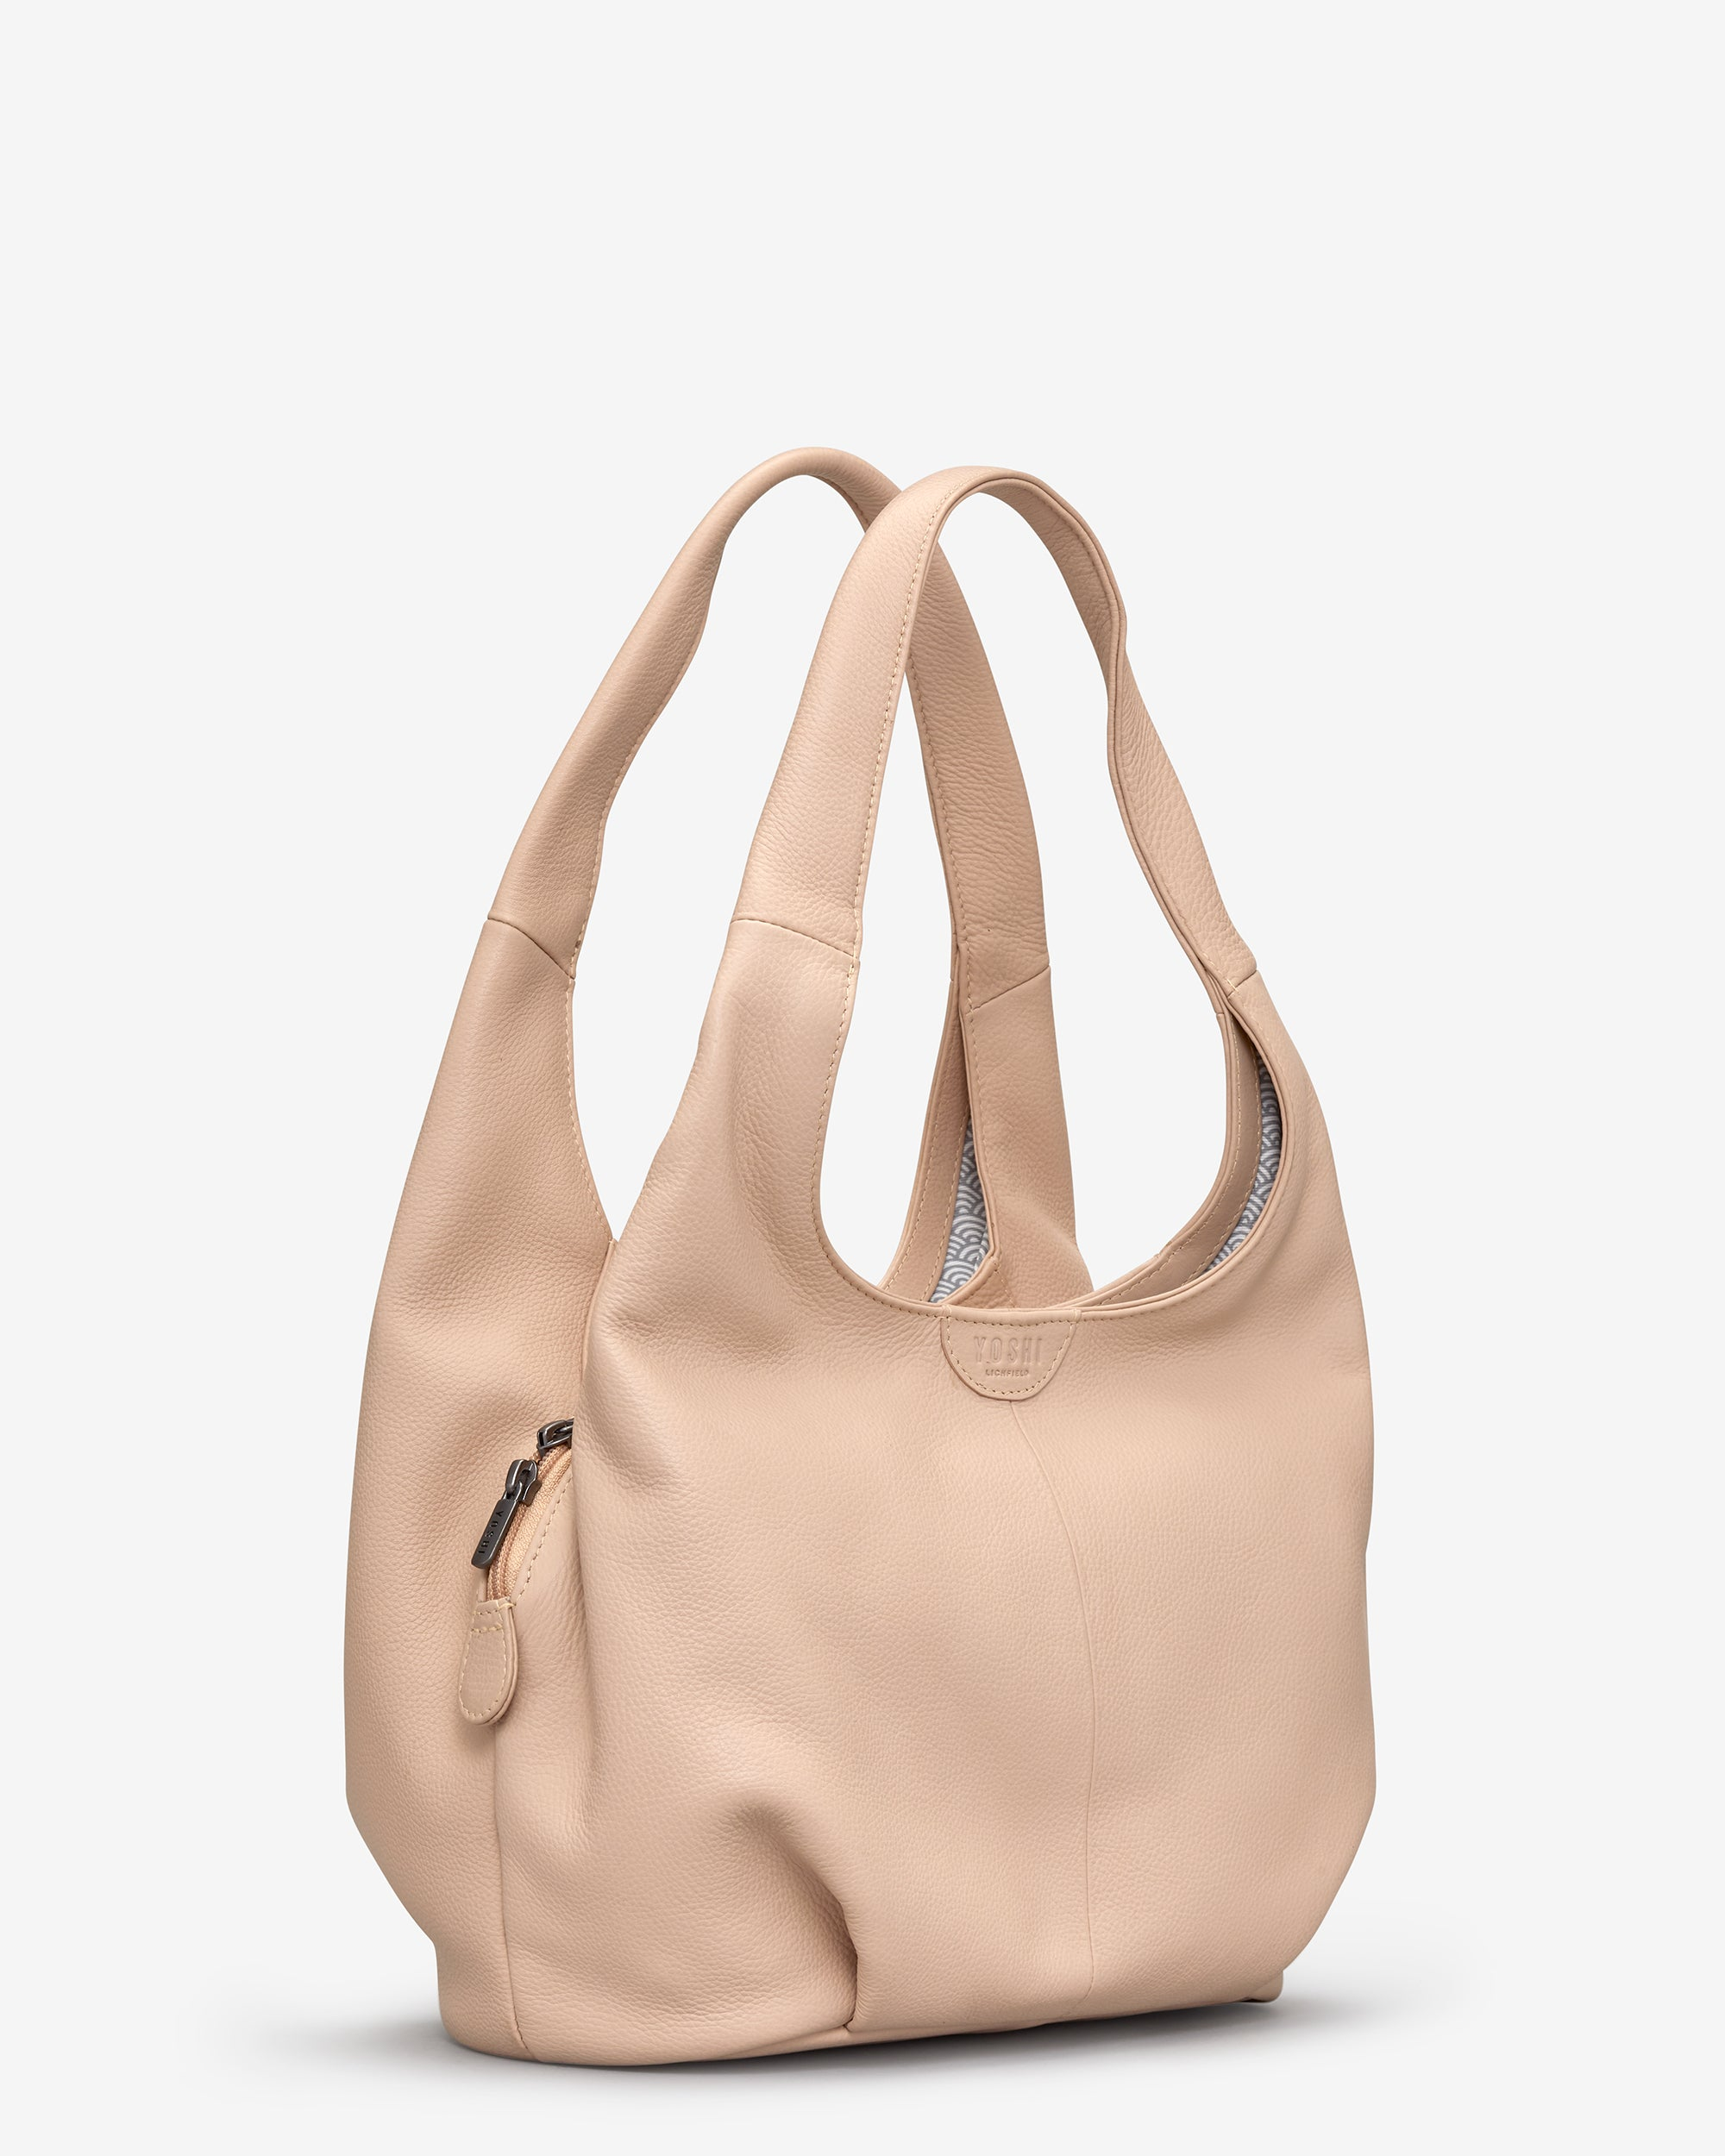 Meehan Frappe Leather Slouch Shoulder Bag - - Yoshi. Yoshi   Shoulder Bag 7dfe6edf23